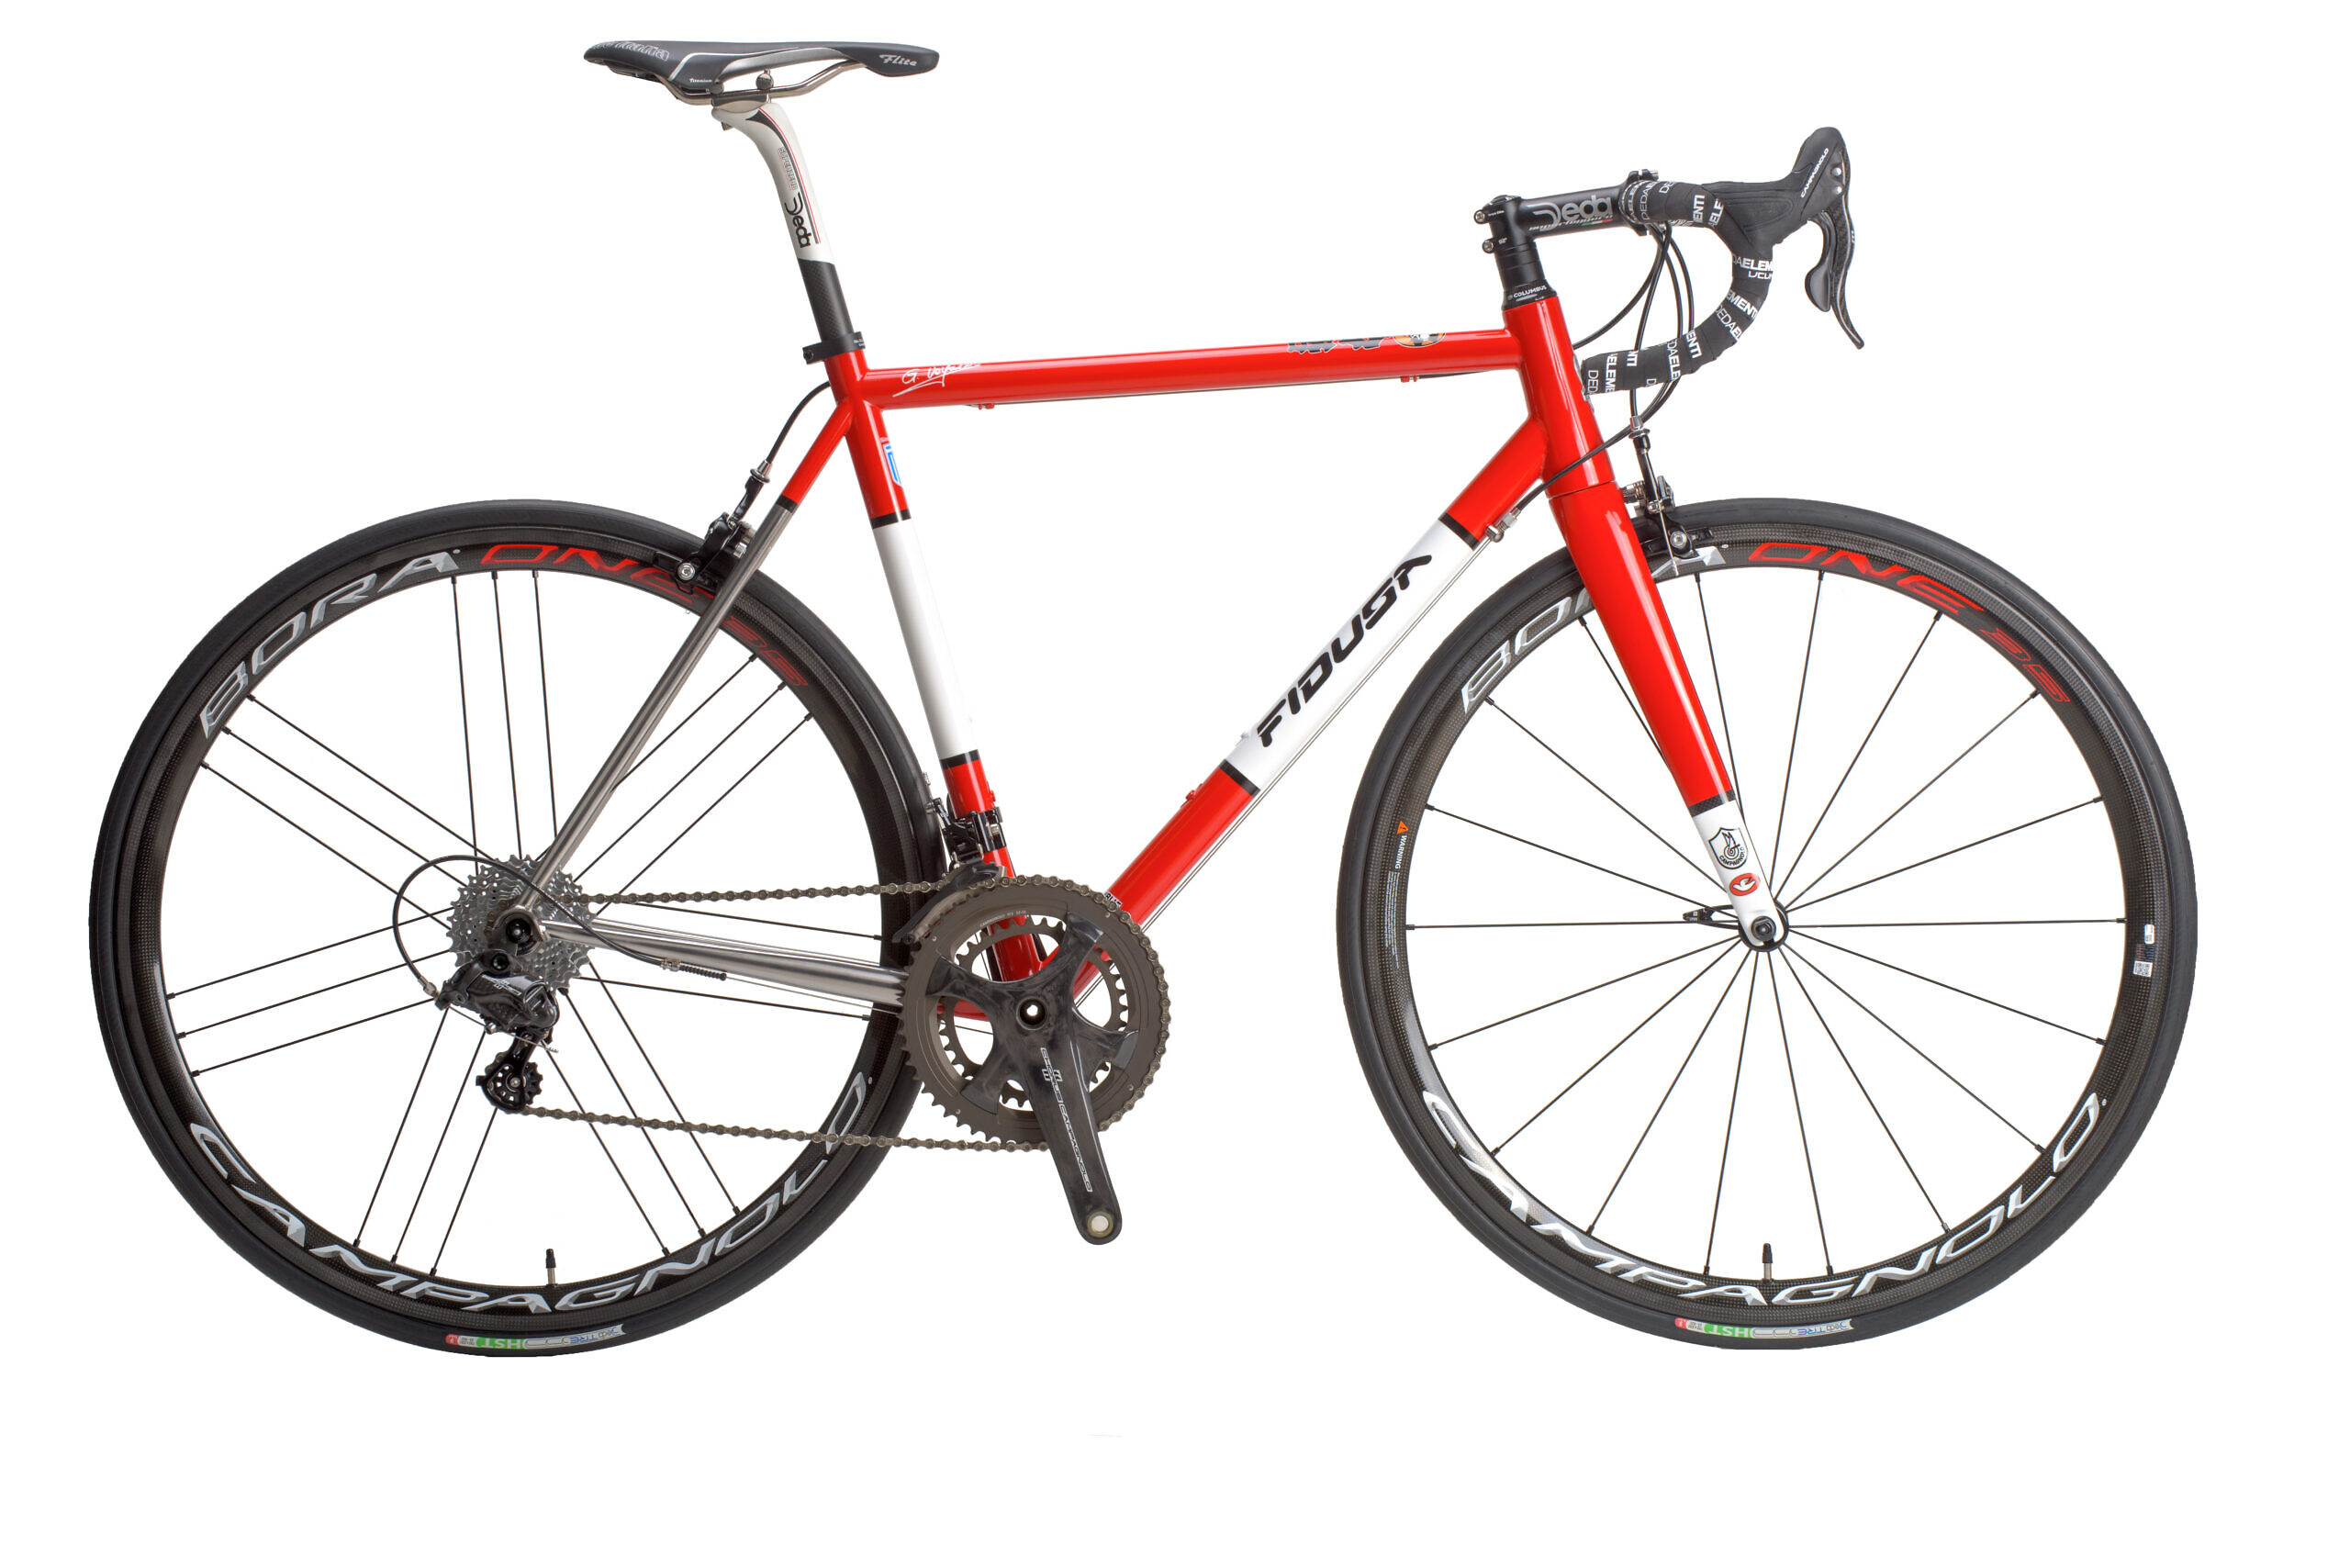 INOX-RED-LAND-clear-scaled Columbus XCR Stainless Steel Road Bike - Dimitris